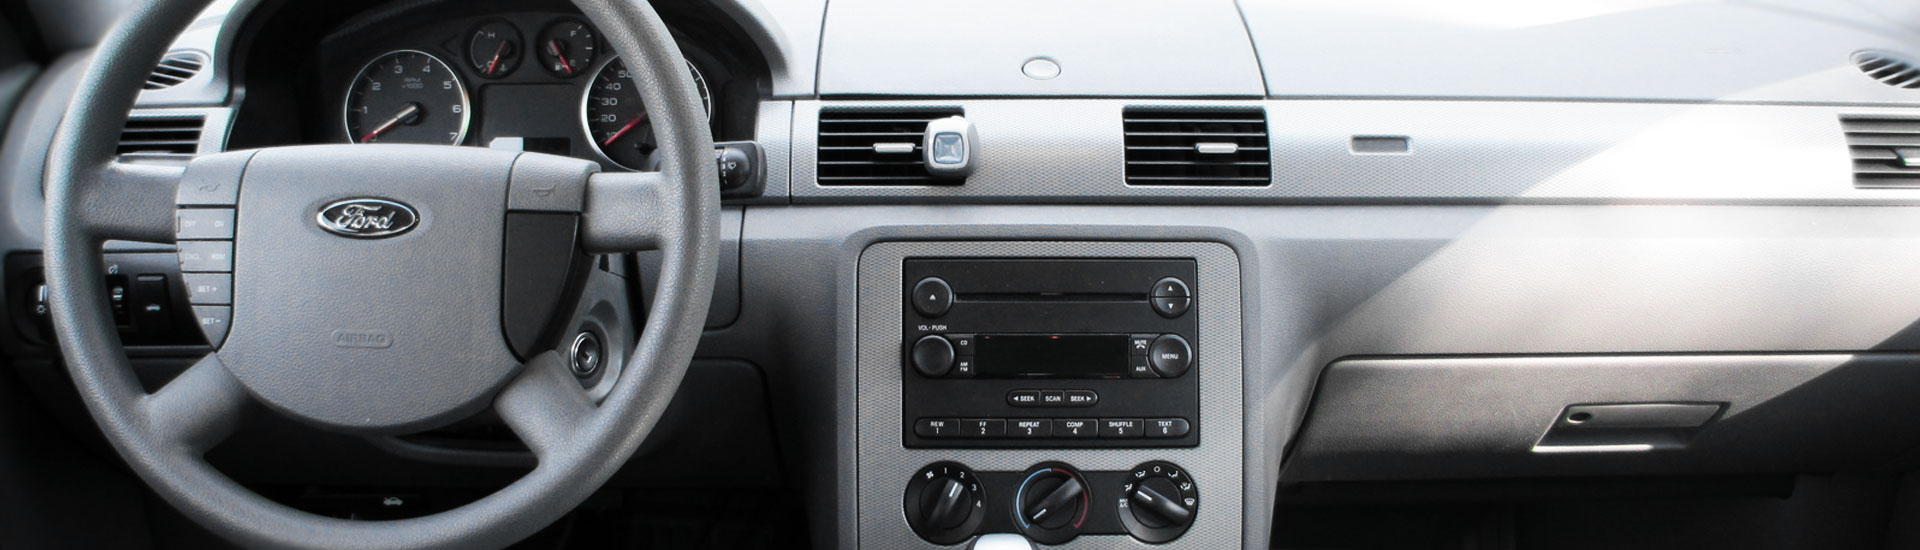 Ford Five Hundred Custom Dash Kits